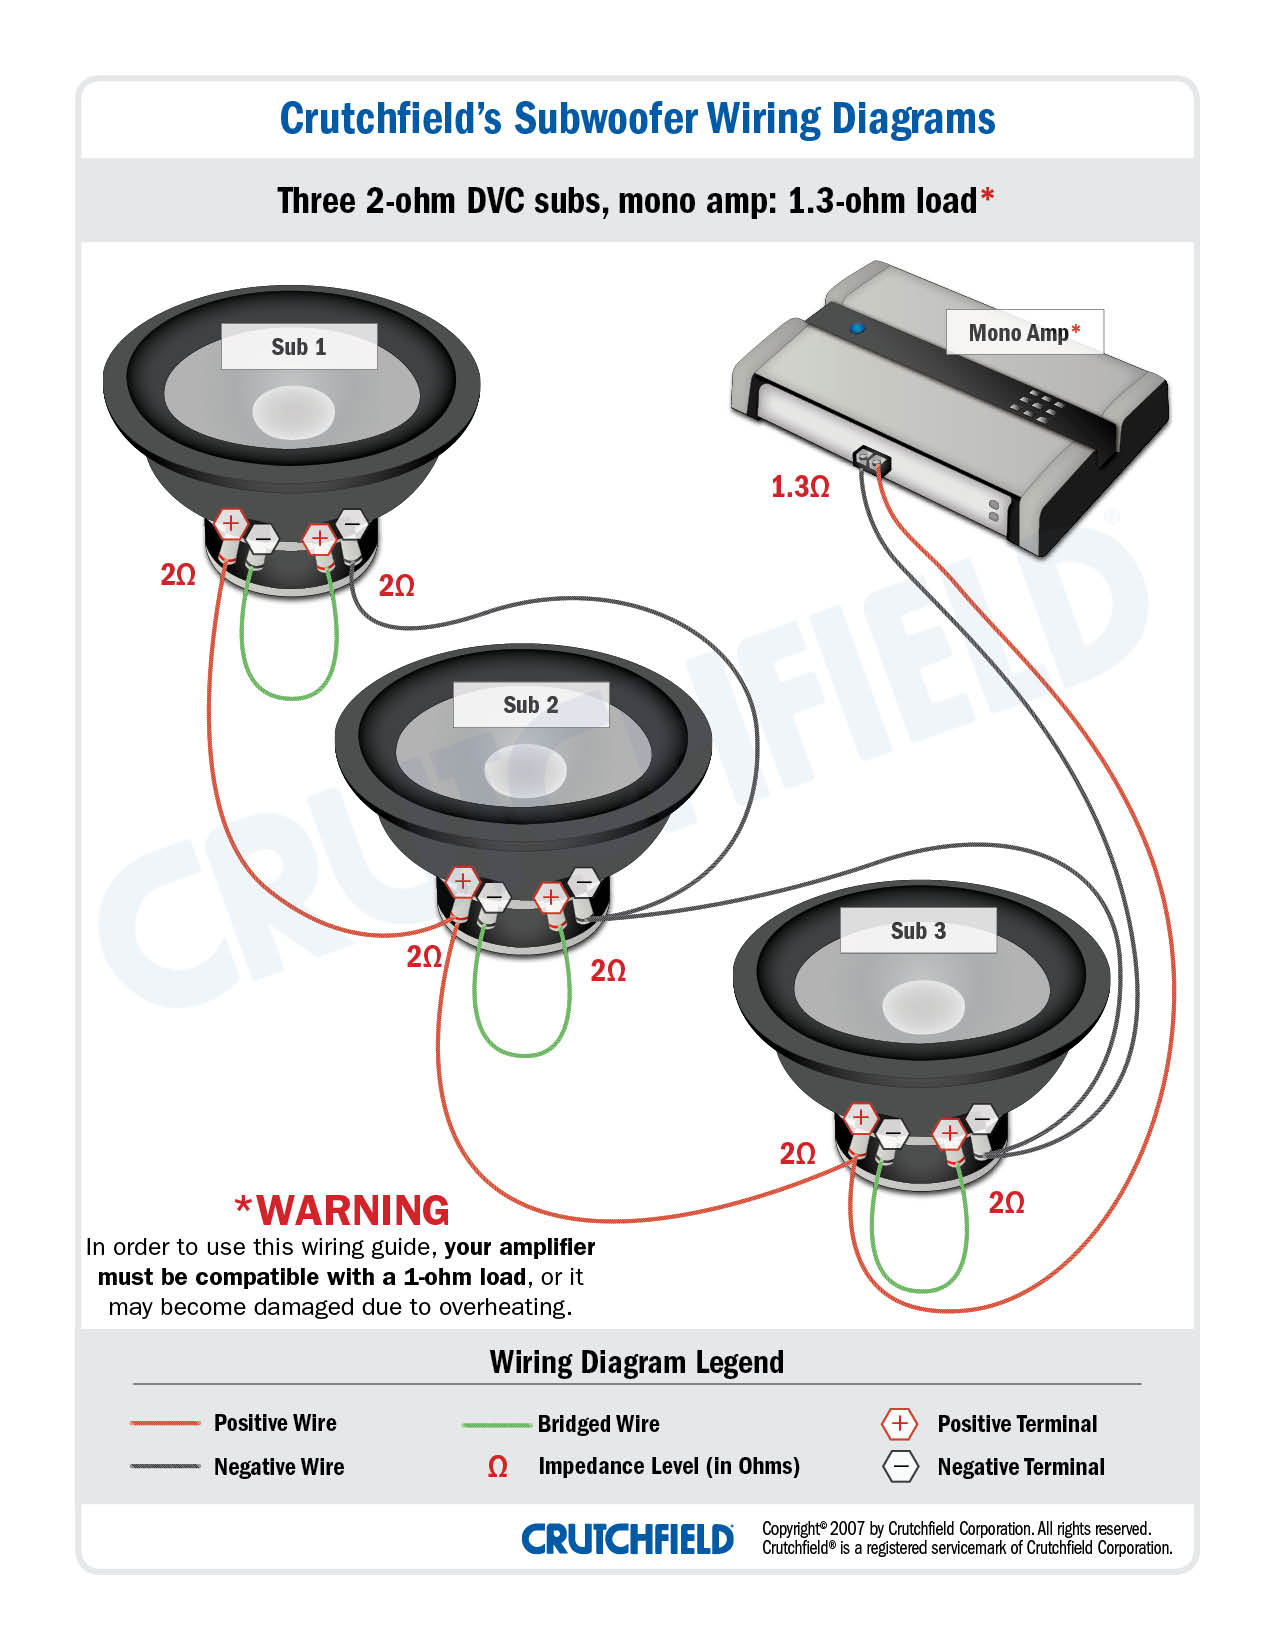 3 DVC 2 ohm mono low imp subwoofer wiring diagrams amp wiring diagram at cos-gaming.co